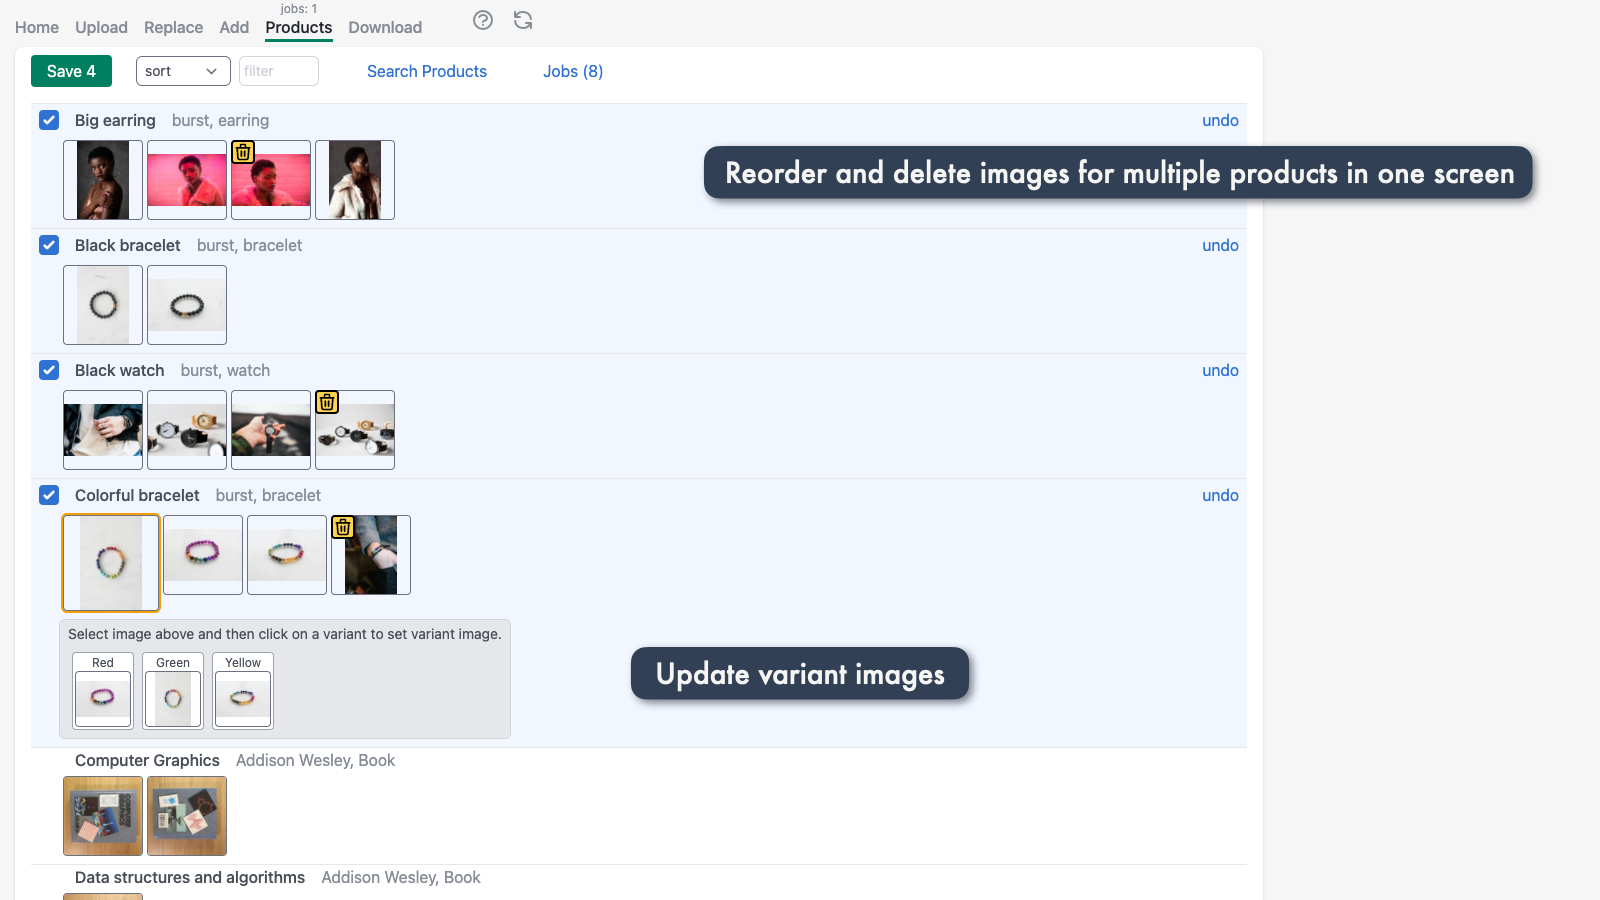 Reorder, delete and set variant images